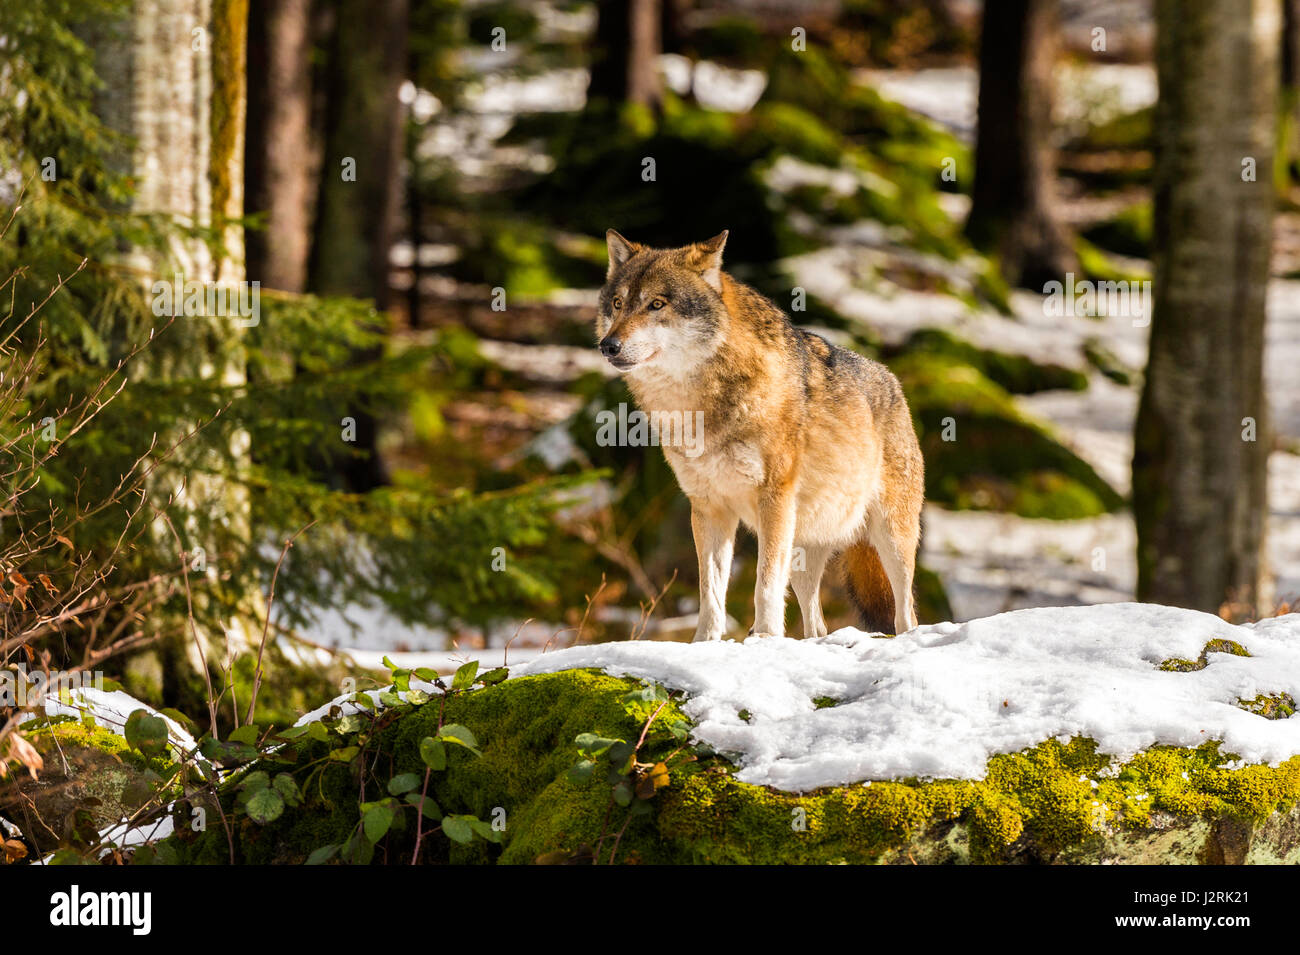 Belle adulte seul loup gris (Canis lupus) mâle alpha décrit l'affectation d'un air menaçant Photo Stock